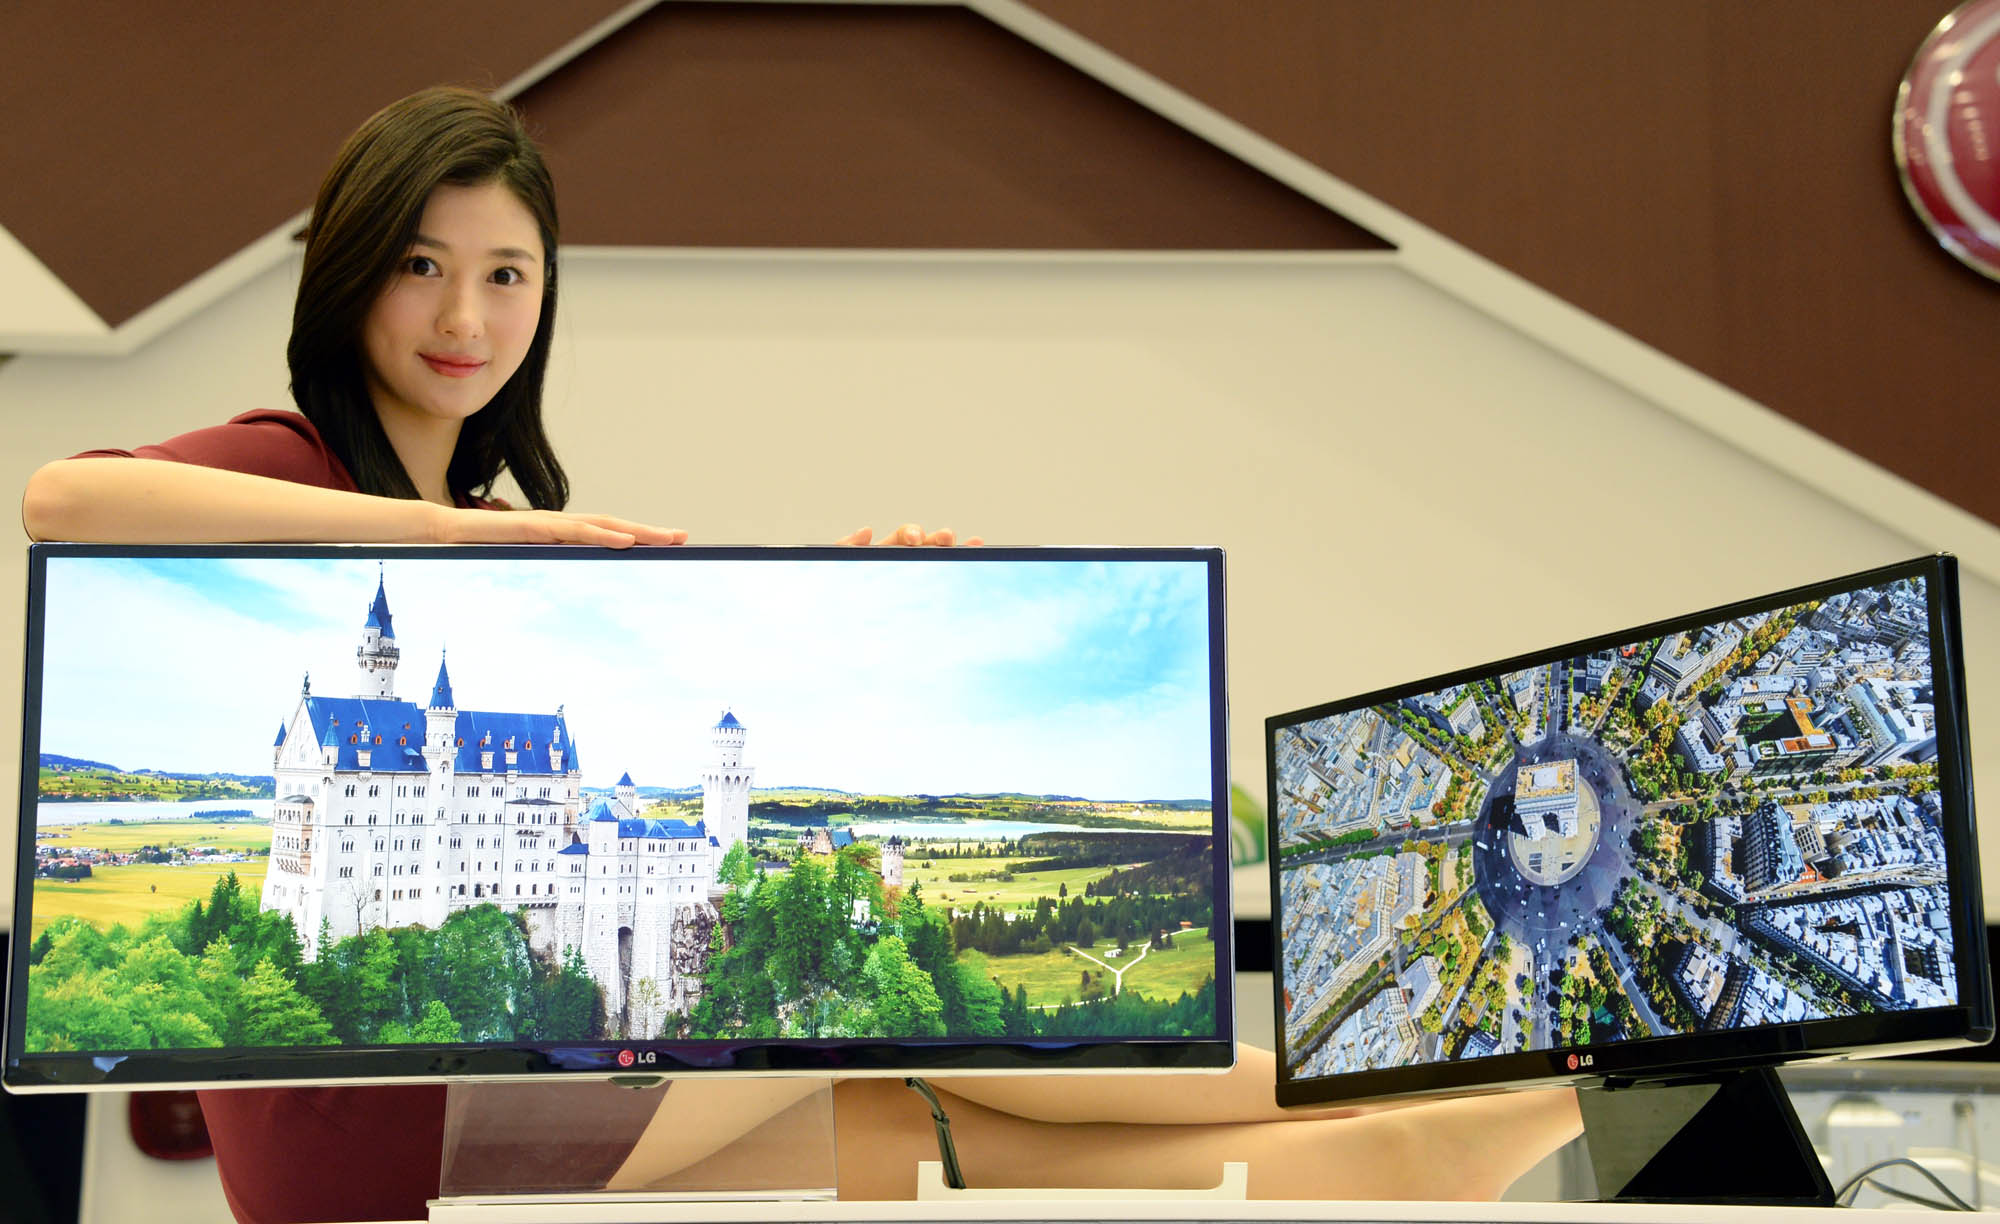 LG TO INTRODUCE NEWEST PREMIUM MONITORS AT CES | LG Newsroom